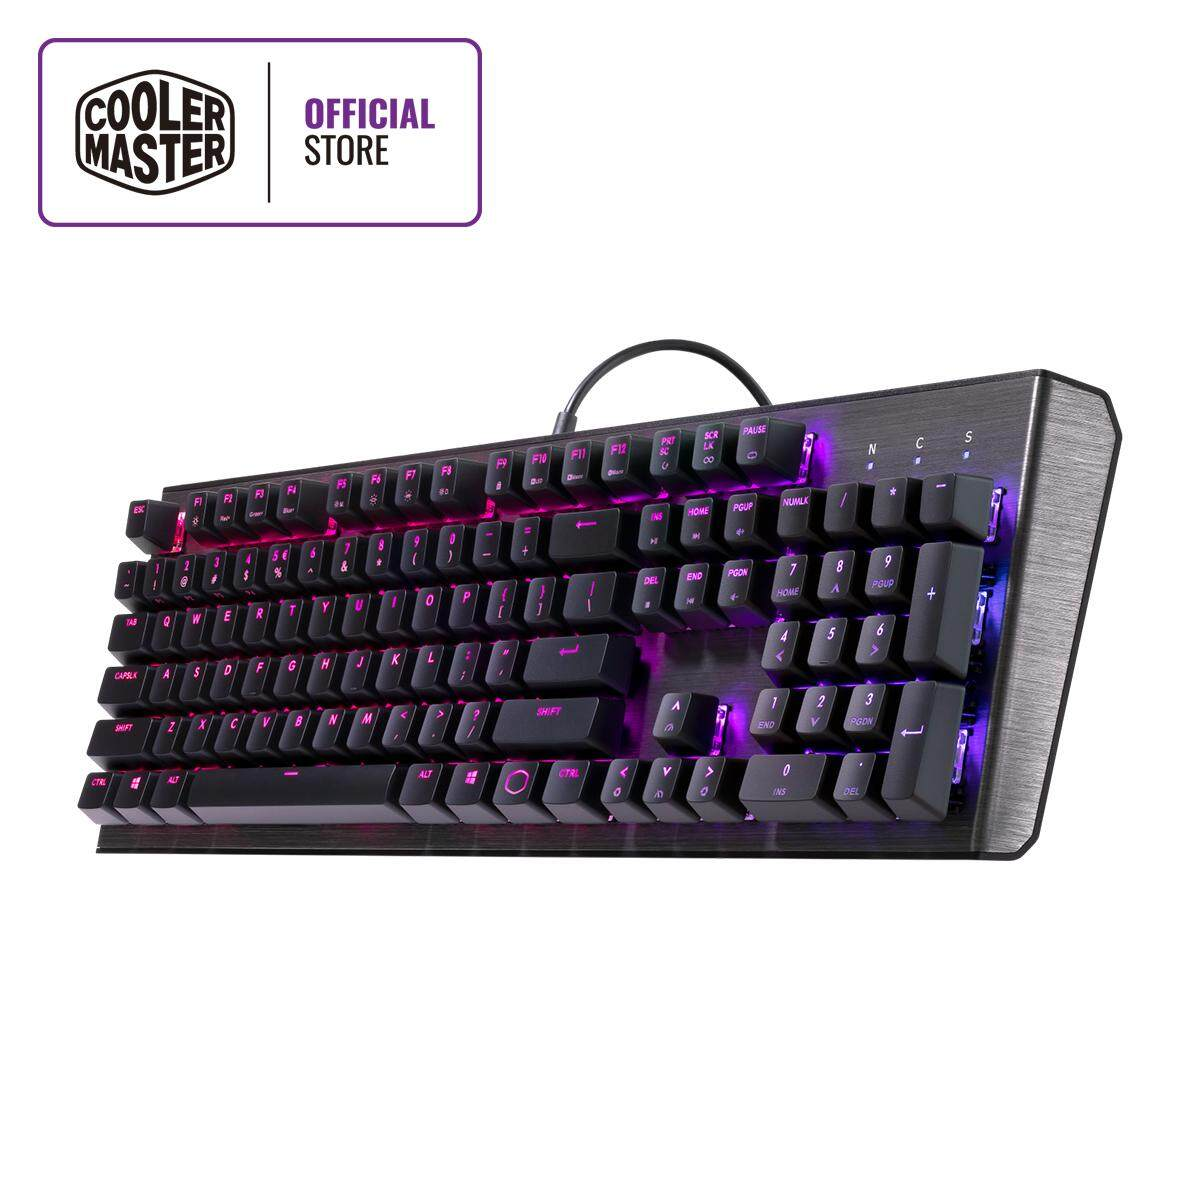 Cooler Master CK550 RGB Gateron Mechanical Gaming (Full Layout / 108 Keys) Malaysia